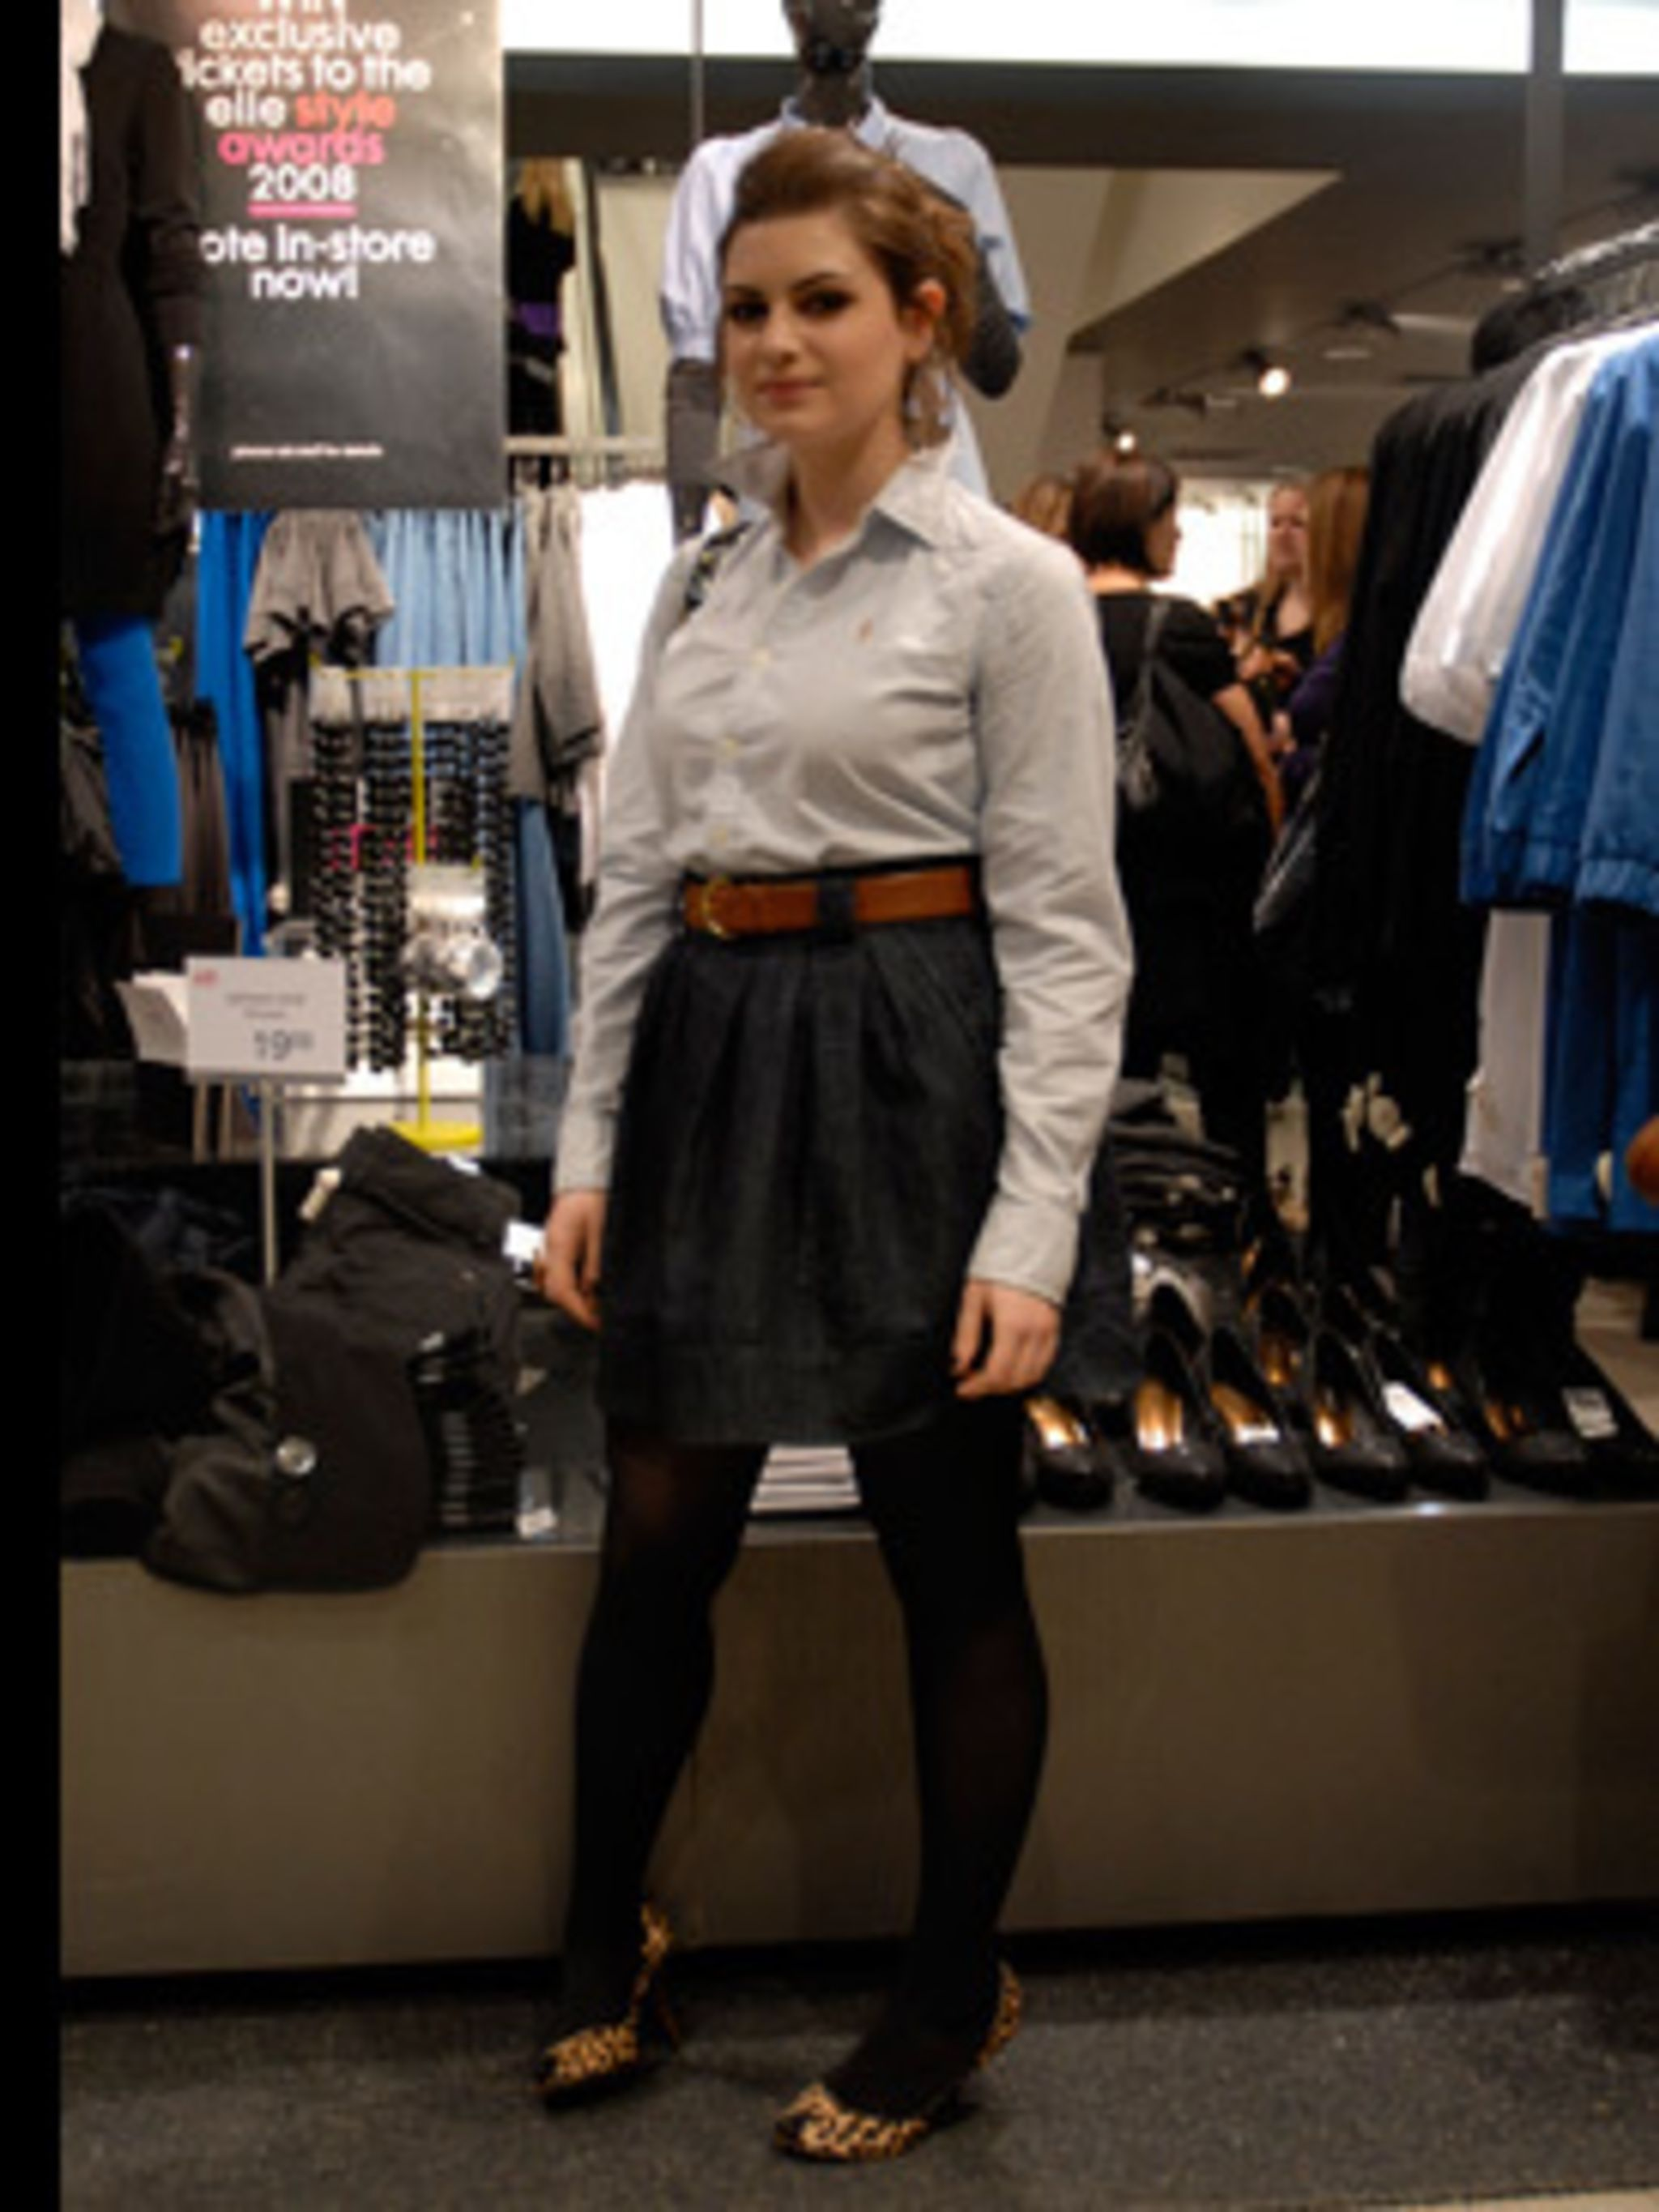 <p>Zarah's signature style is preppy and she has got the look just right with a pale blue shirt, tan belt and high waist navy skirt.</p>